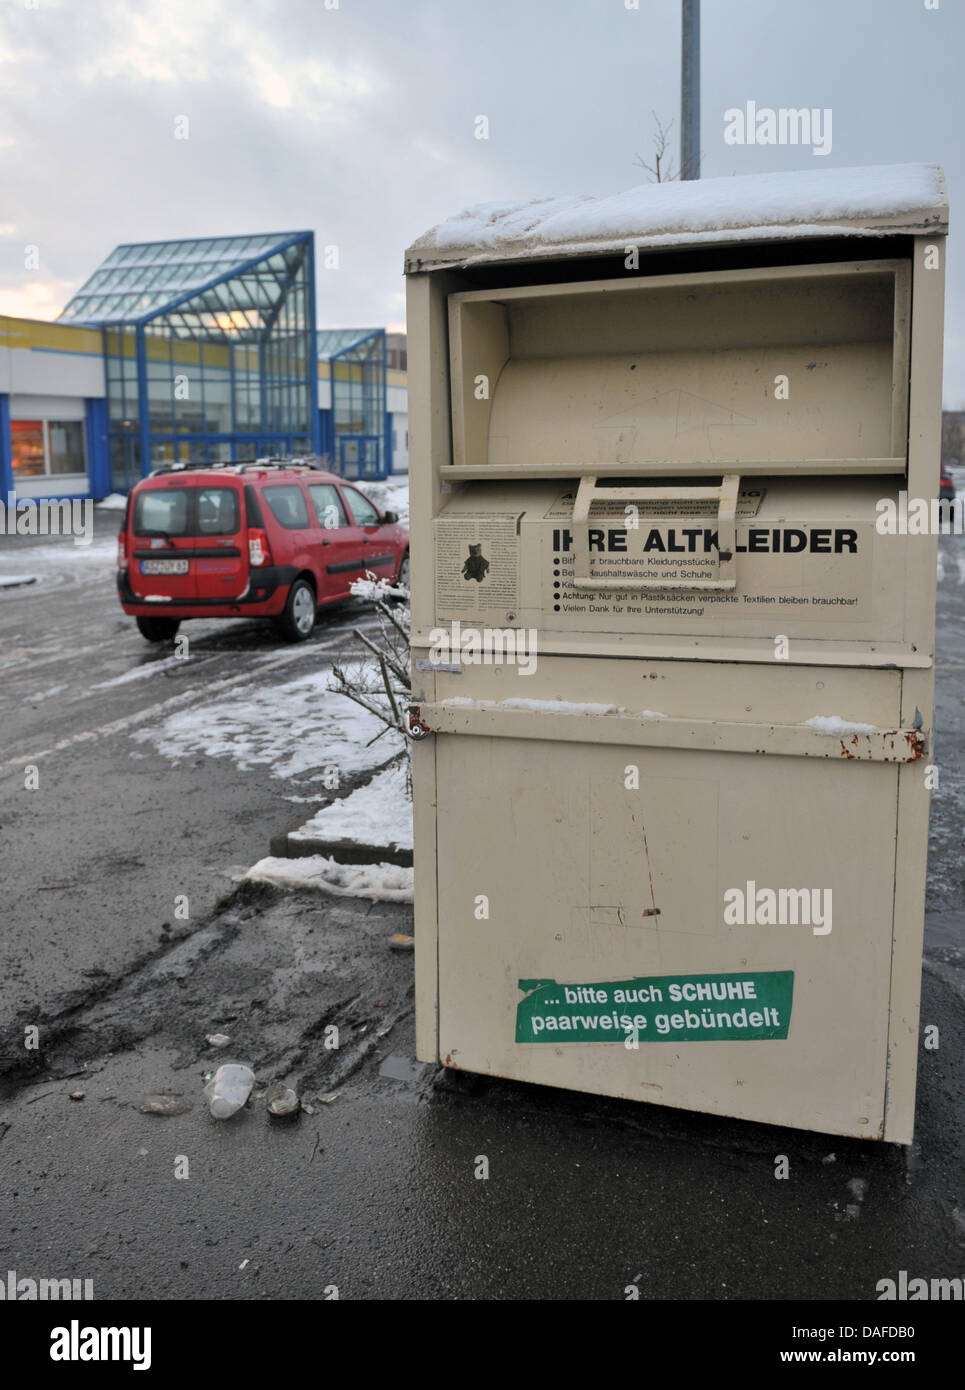 (file) - A dpa file picture dated 19 January 2011 shows a container for used clothes in which the corpse of an infant - Stock Image